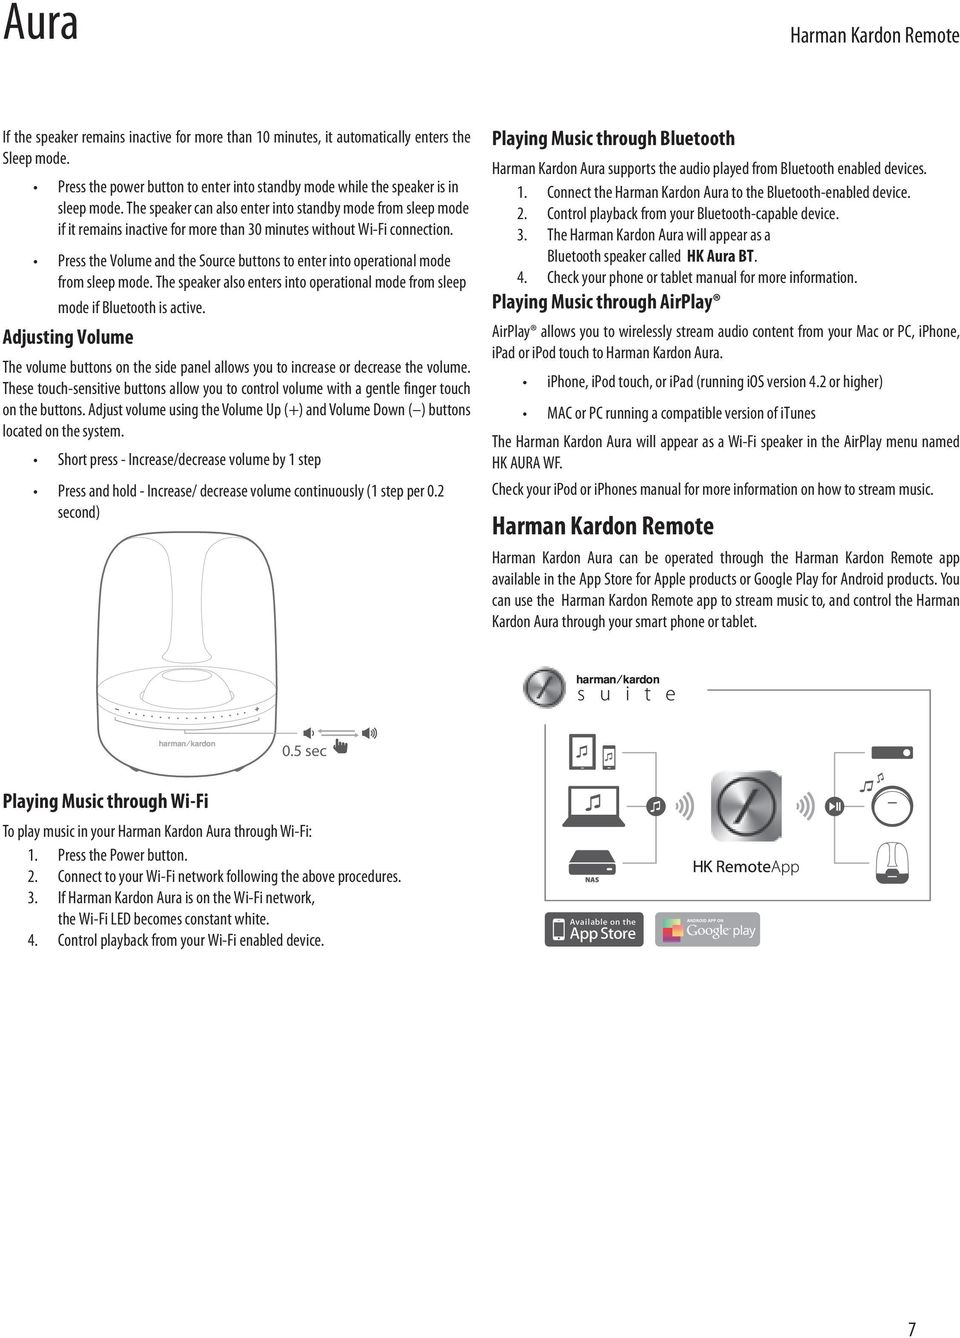 Aura  Wireless Speaker System Owner s Manual - PDF